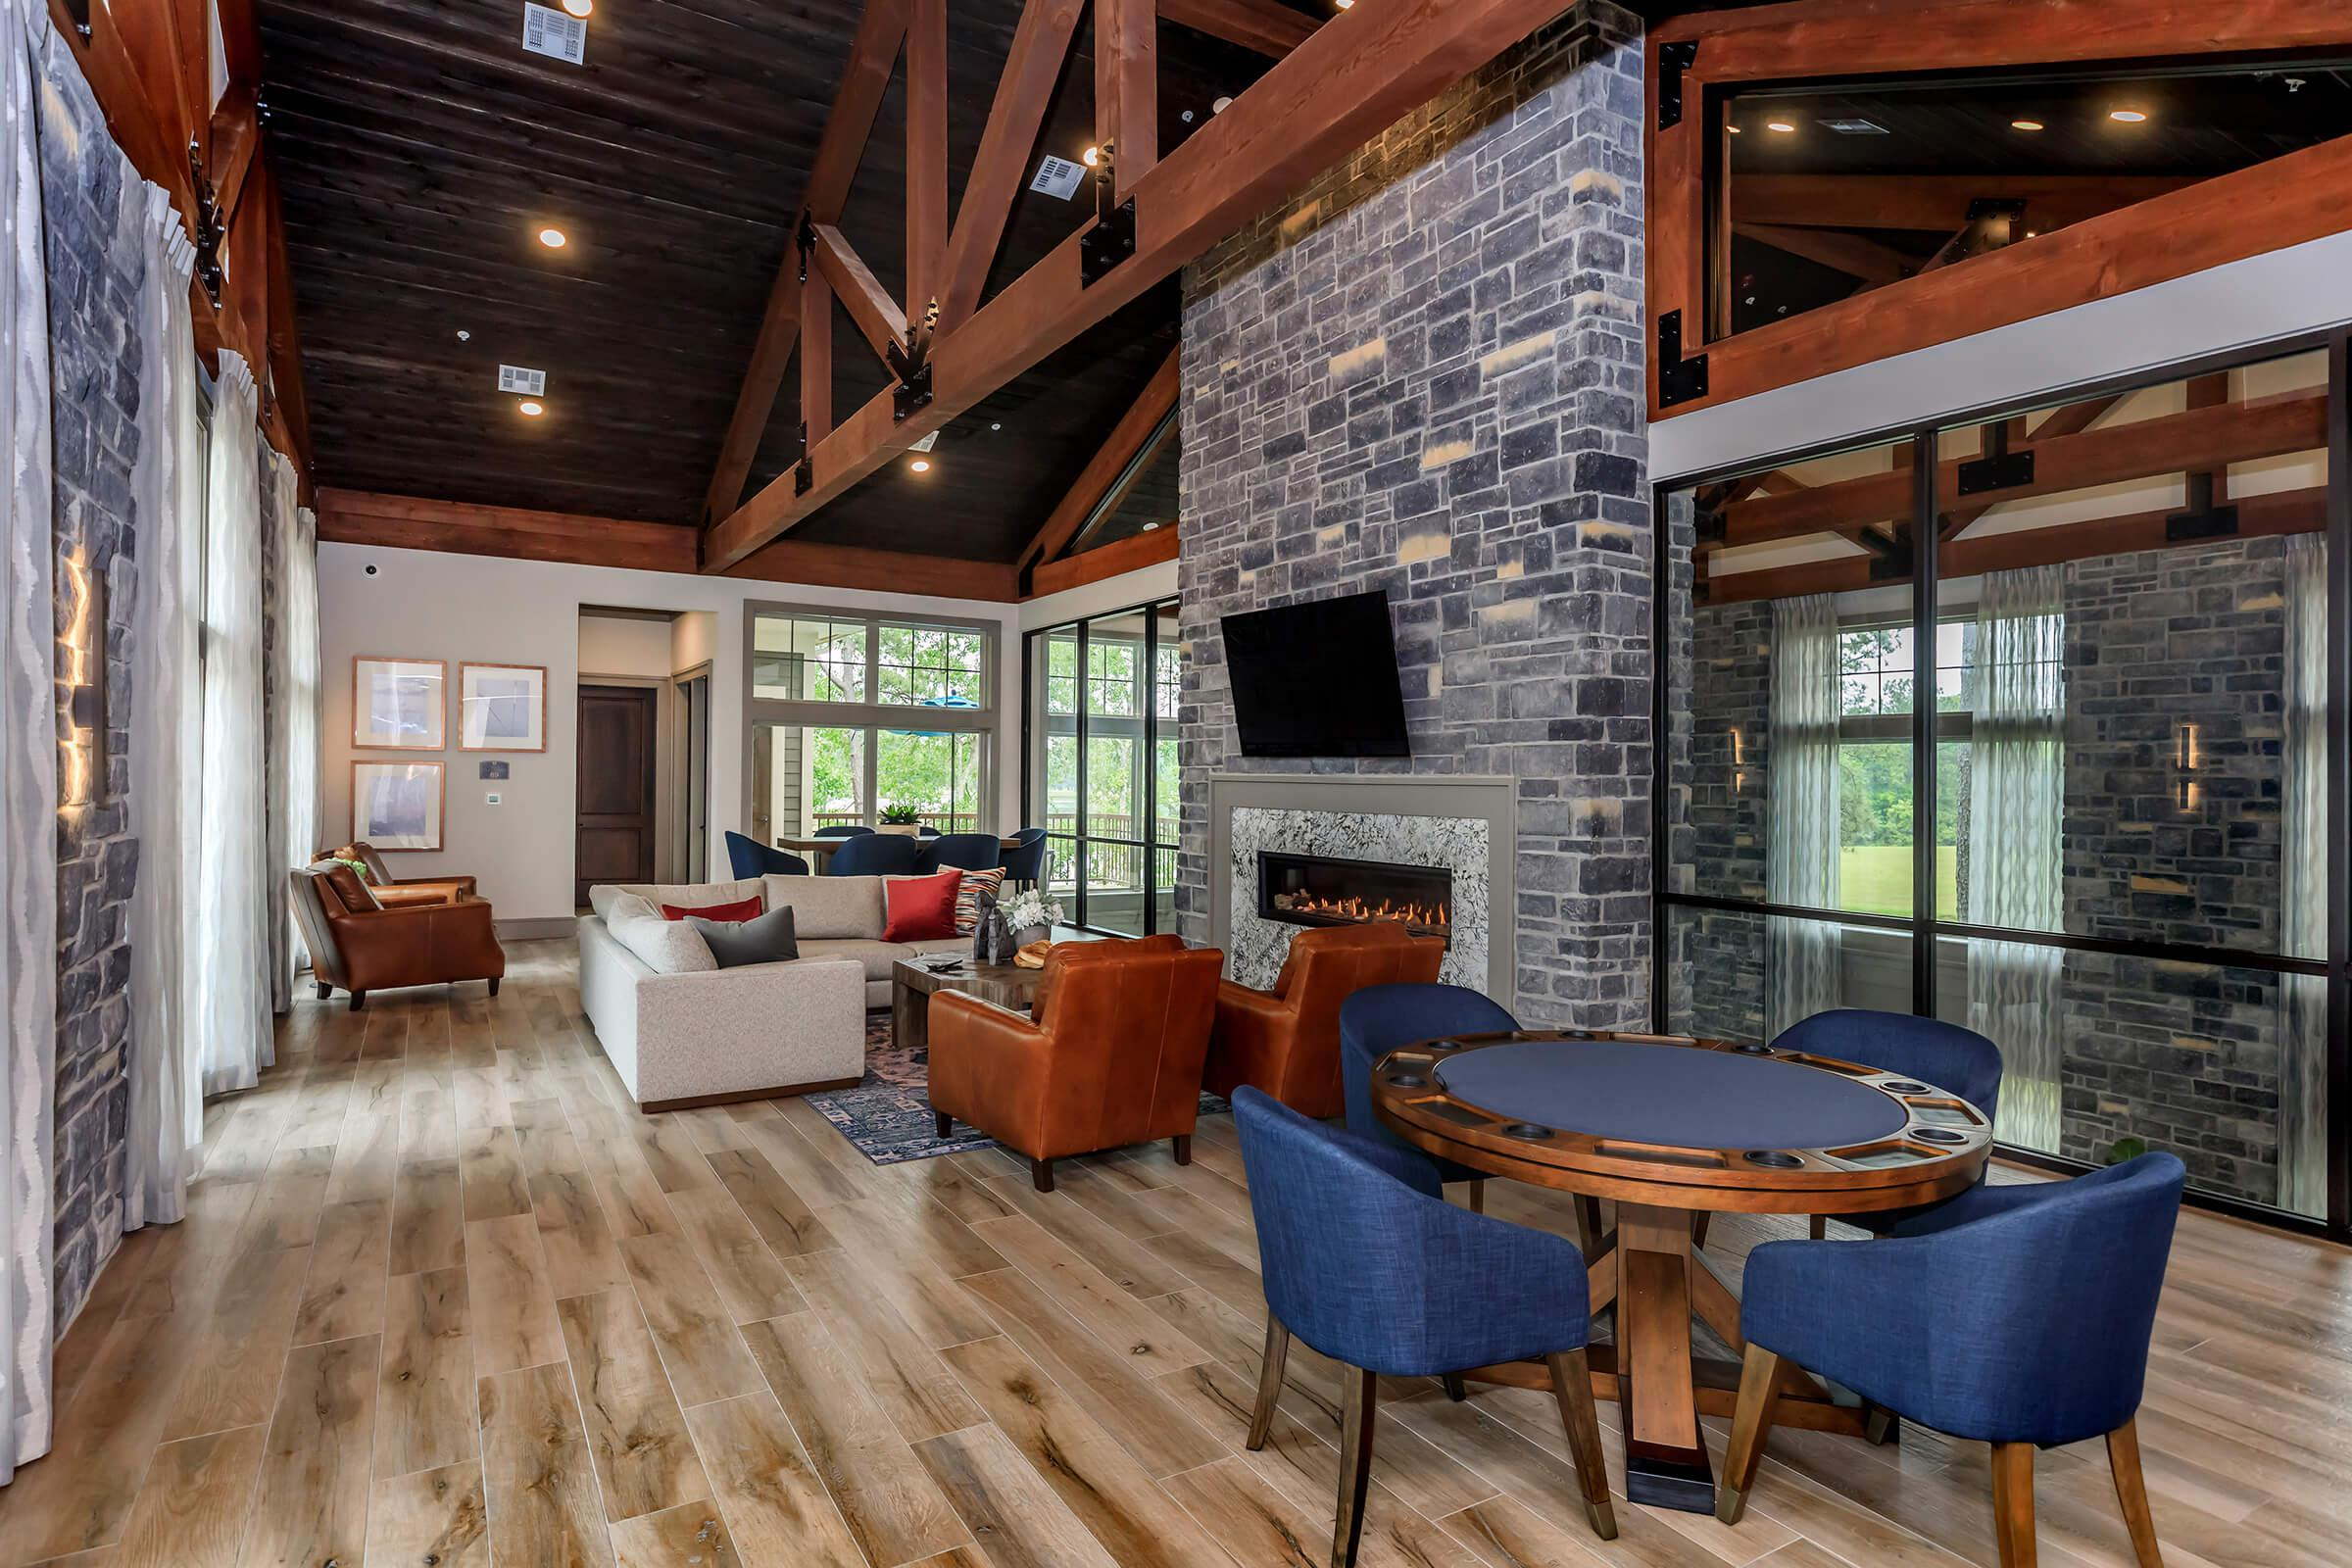 Upscale resident lounge showing multiple seating areas, TX, fireplace, and wood floors.